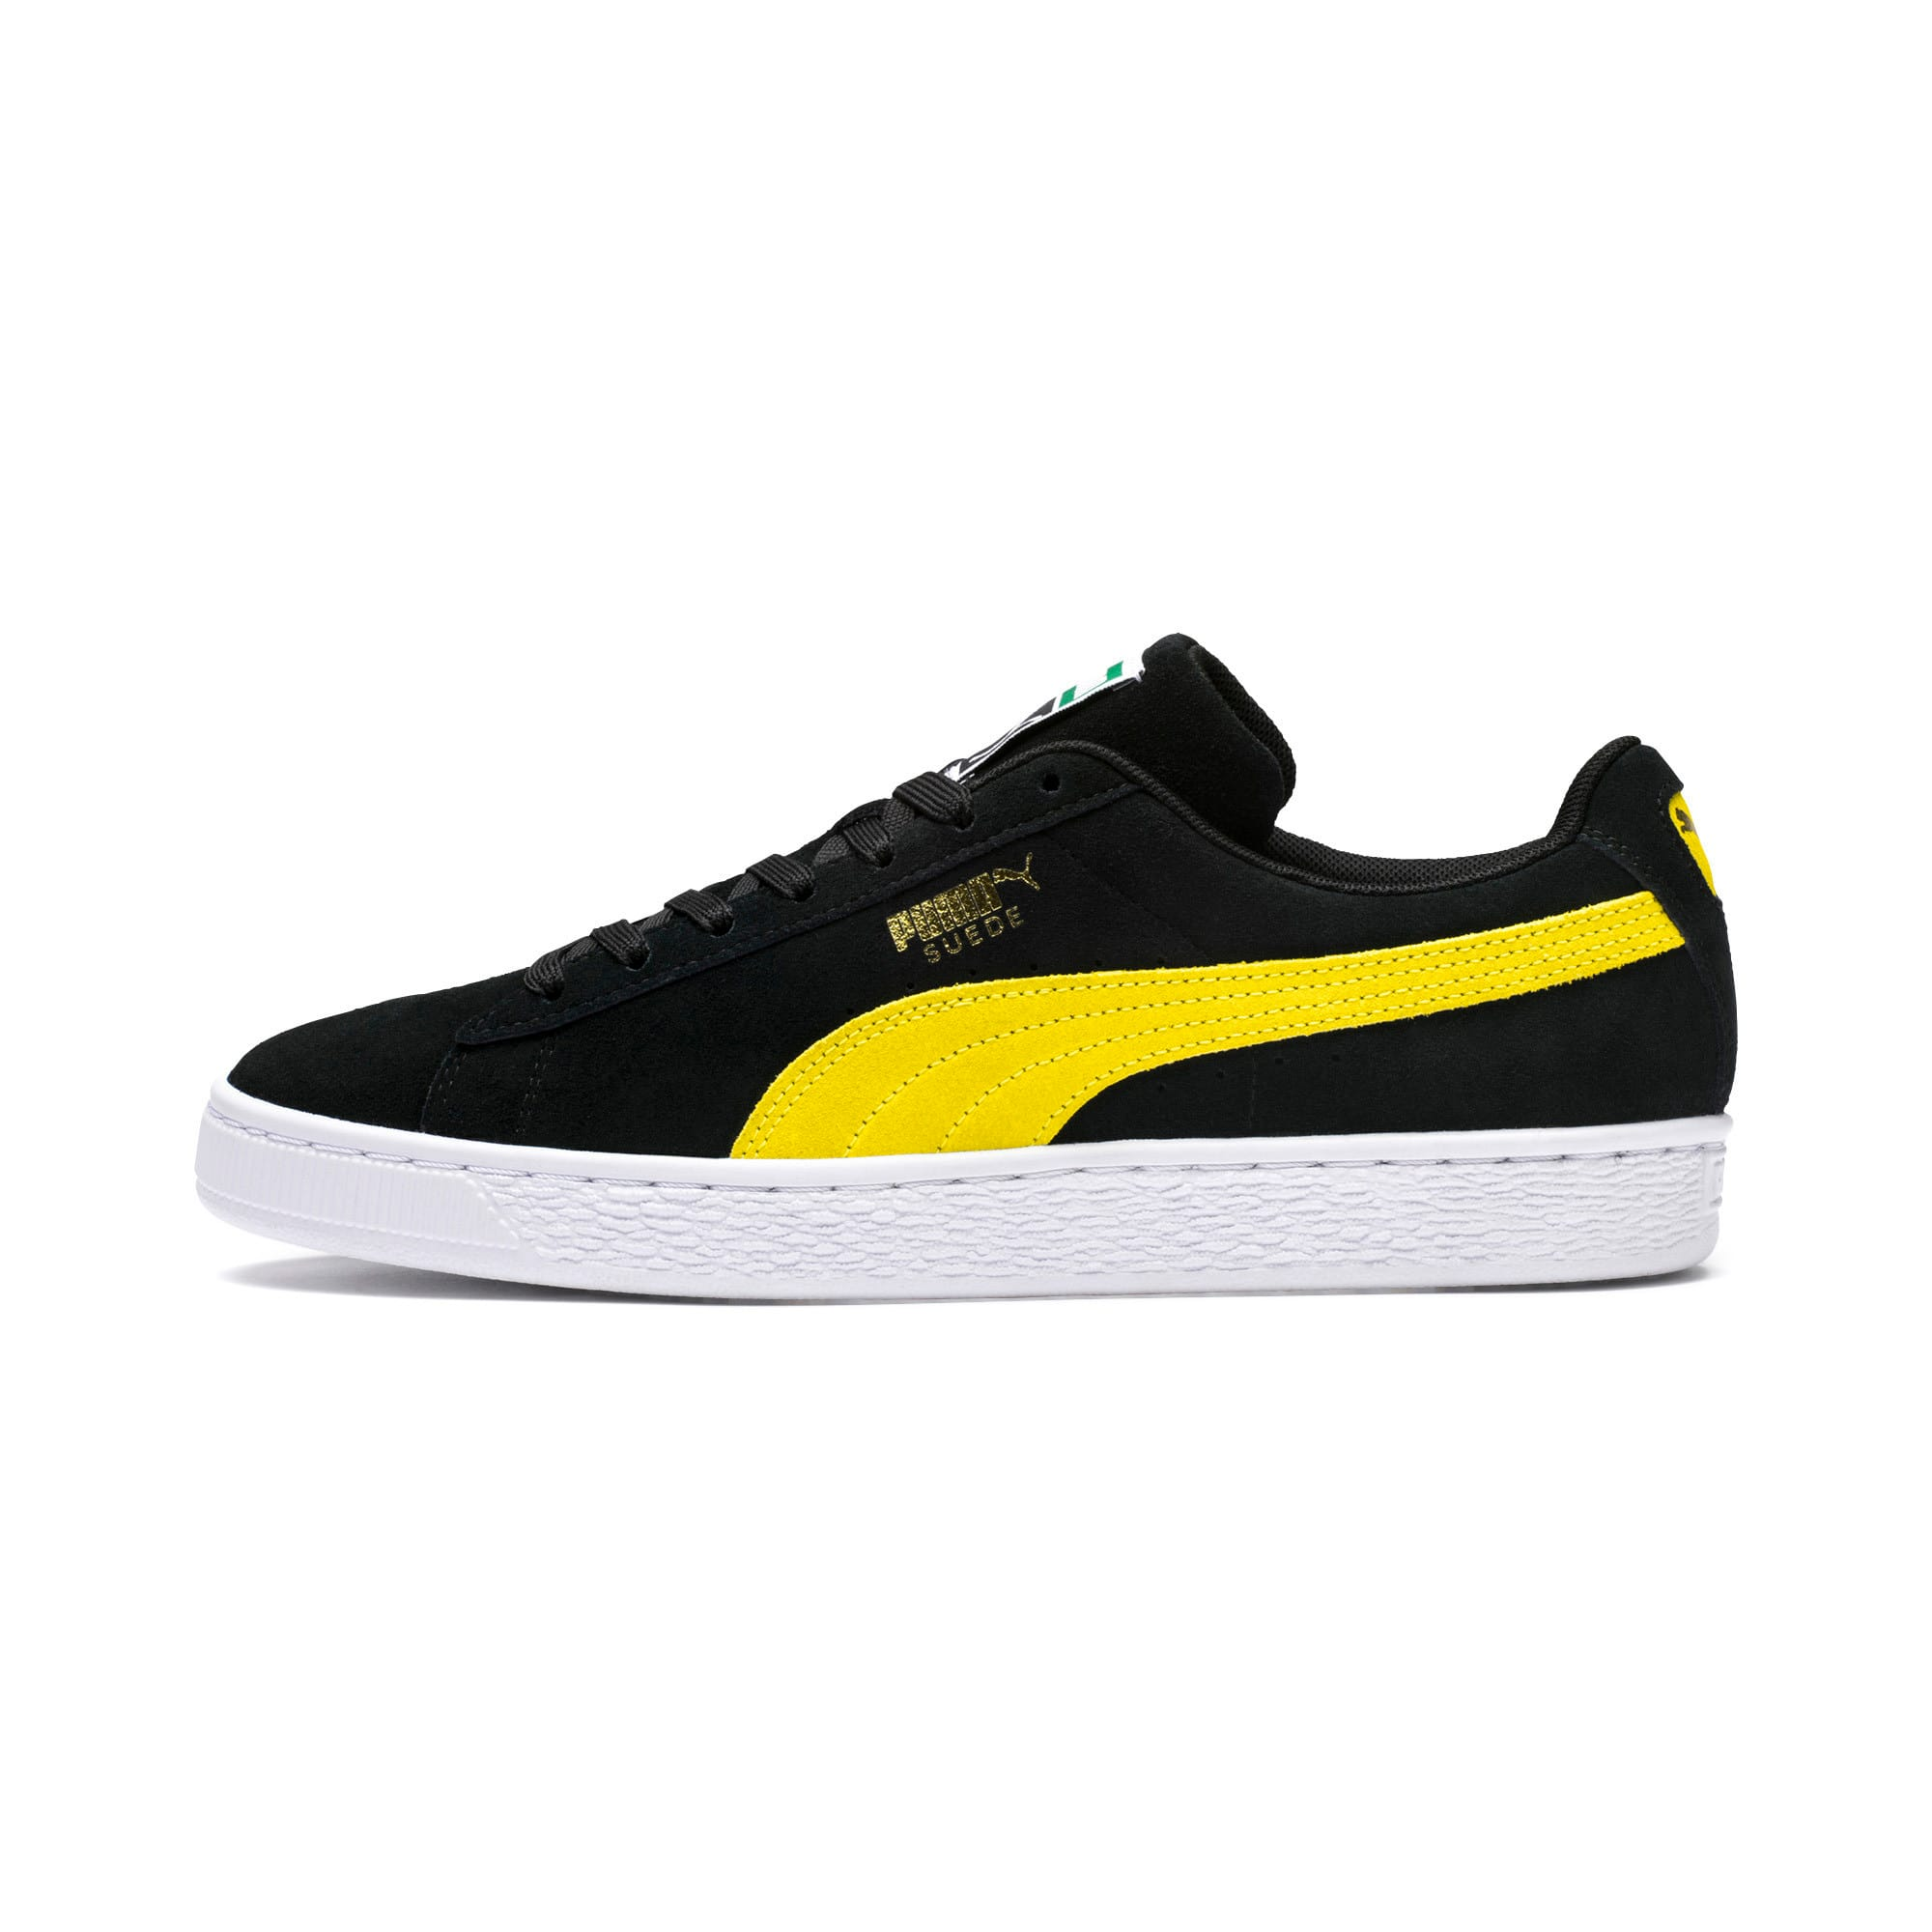 Thumbnail 1 of Suede Classic Trainers, Puma Black-Blazing Yellow, medium